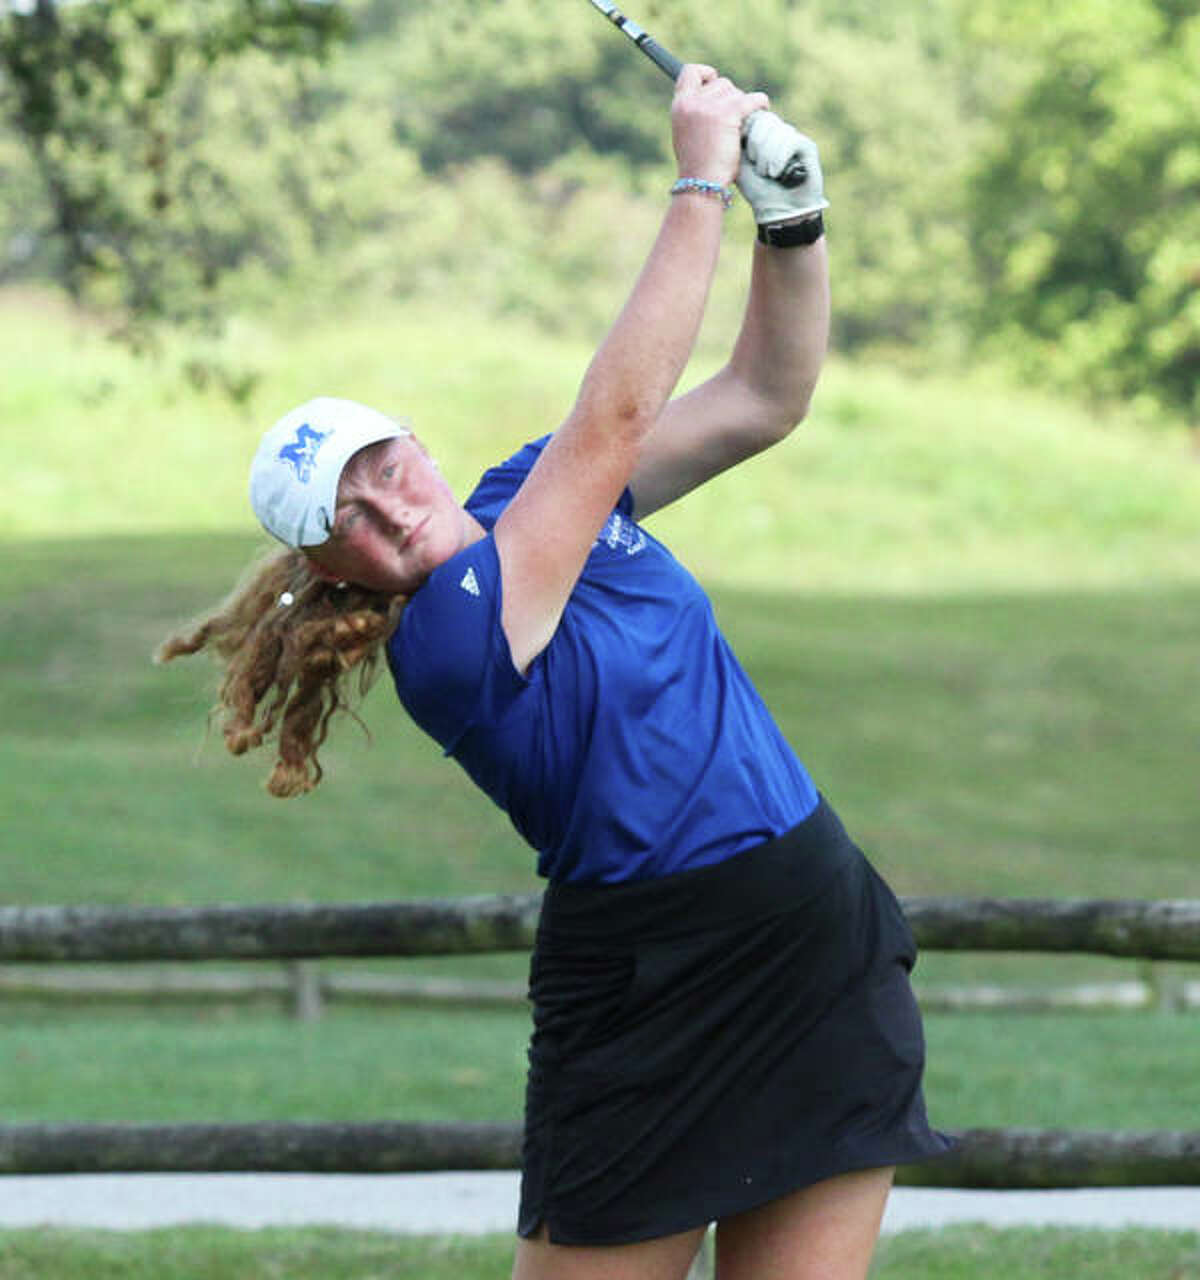 Marquette's Gracie Piar watches her shot from the tee during the Class 2A regional on Oct. 3 at Roland Barkau Memorial Golf Course in Okawville. Piar tied for tourney runner-up with a 78.